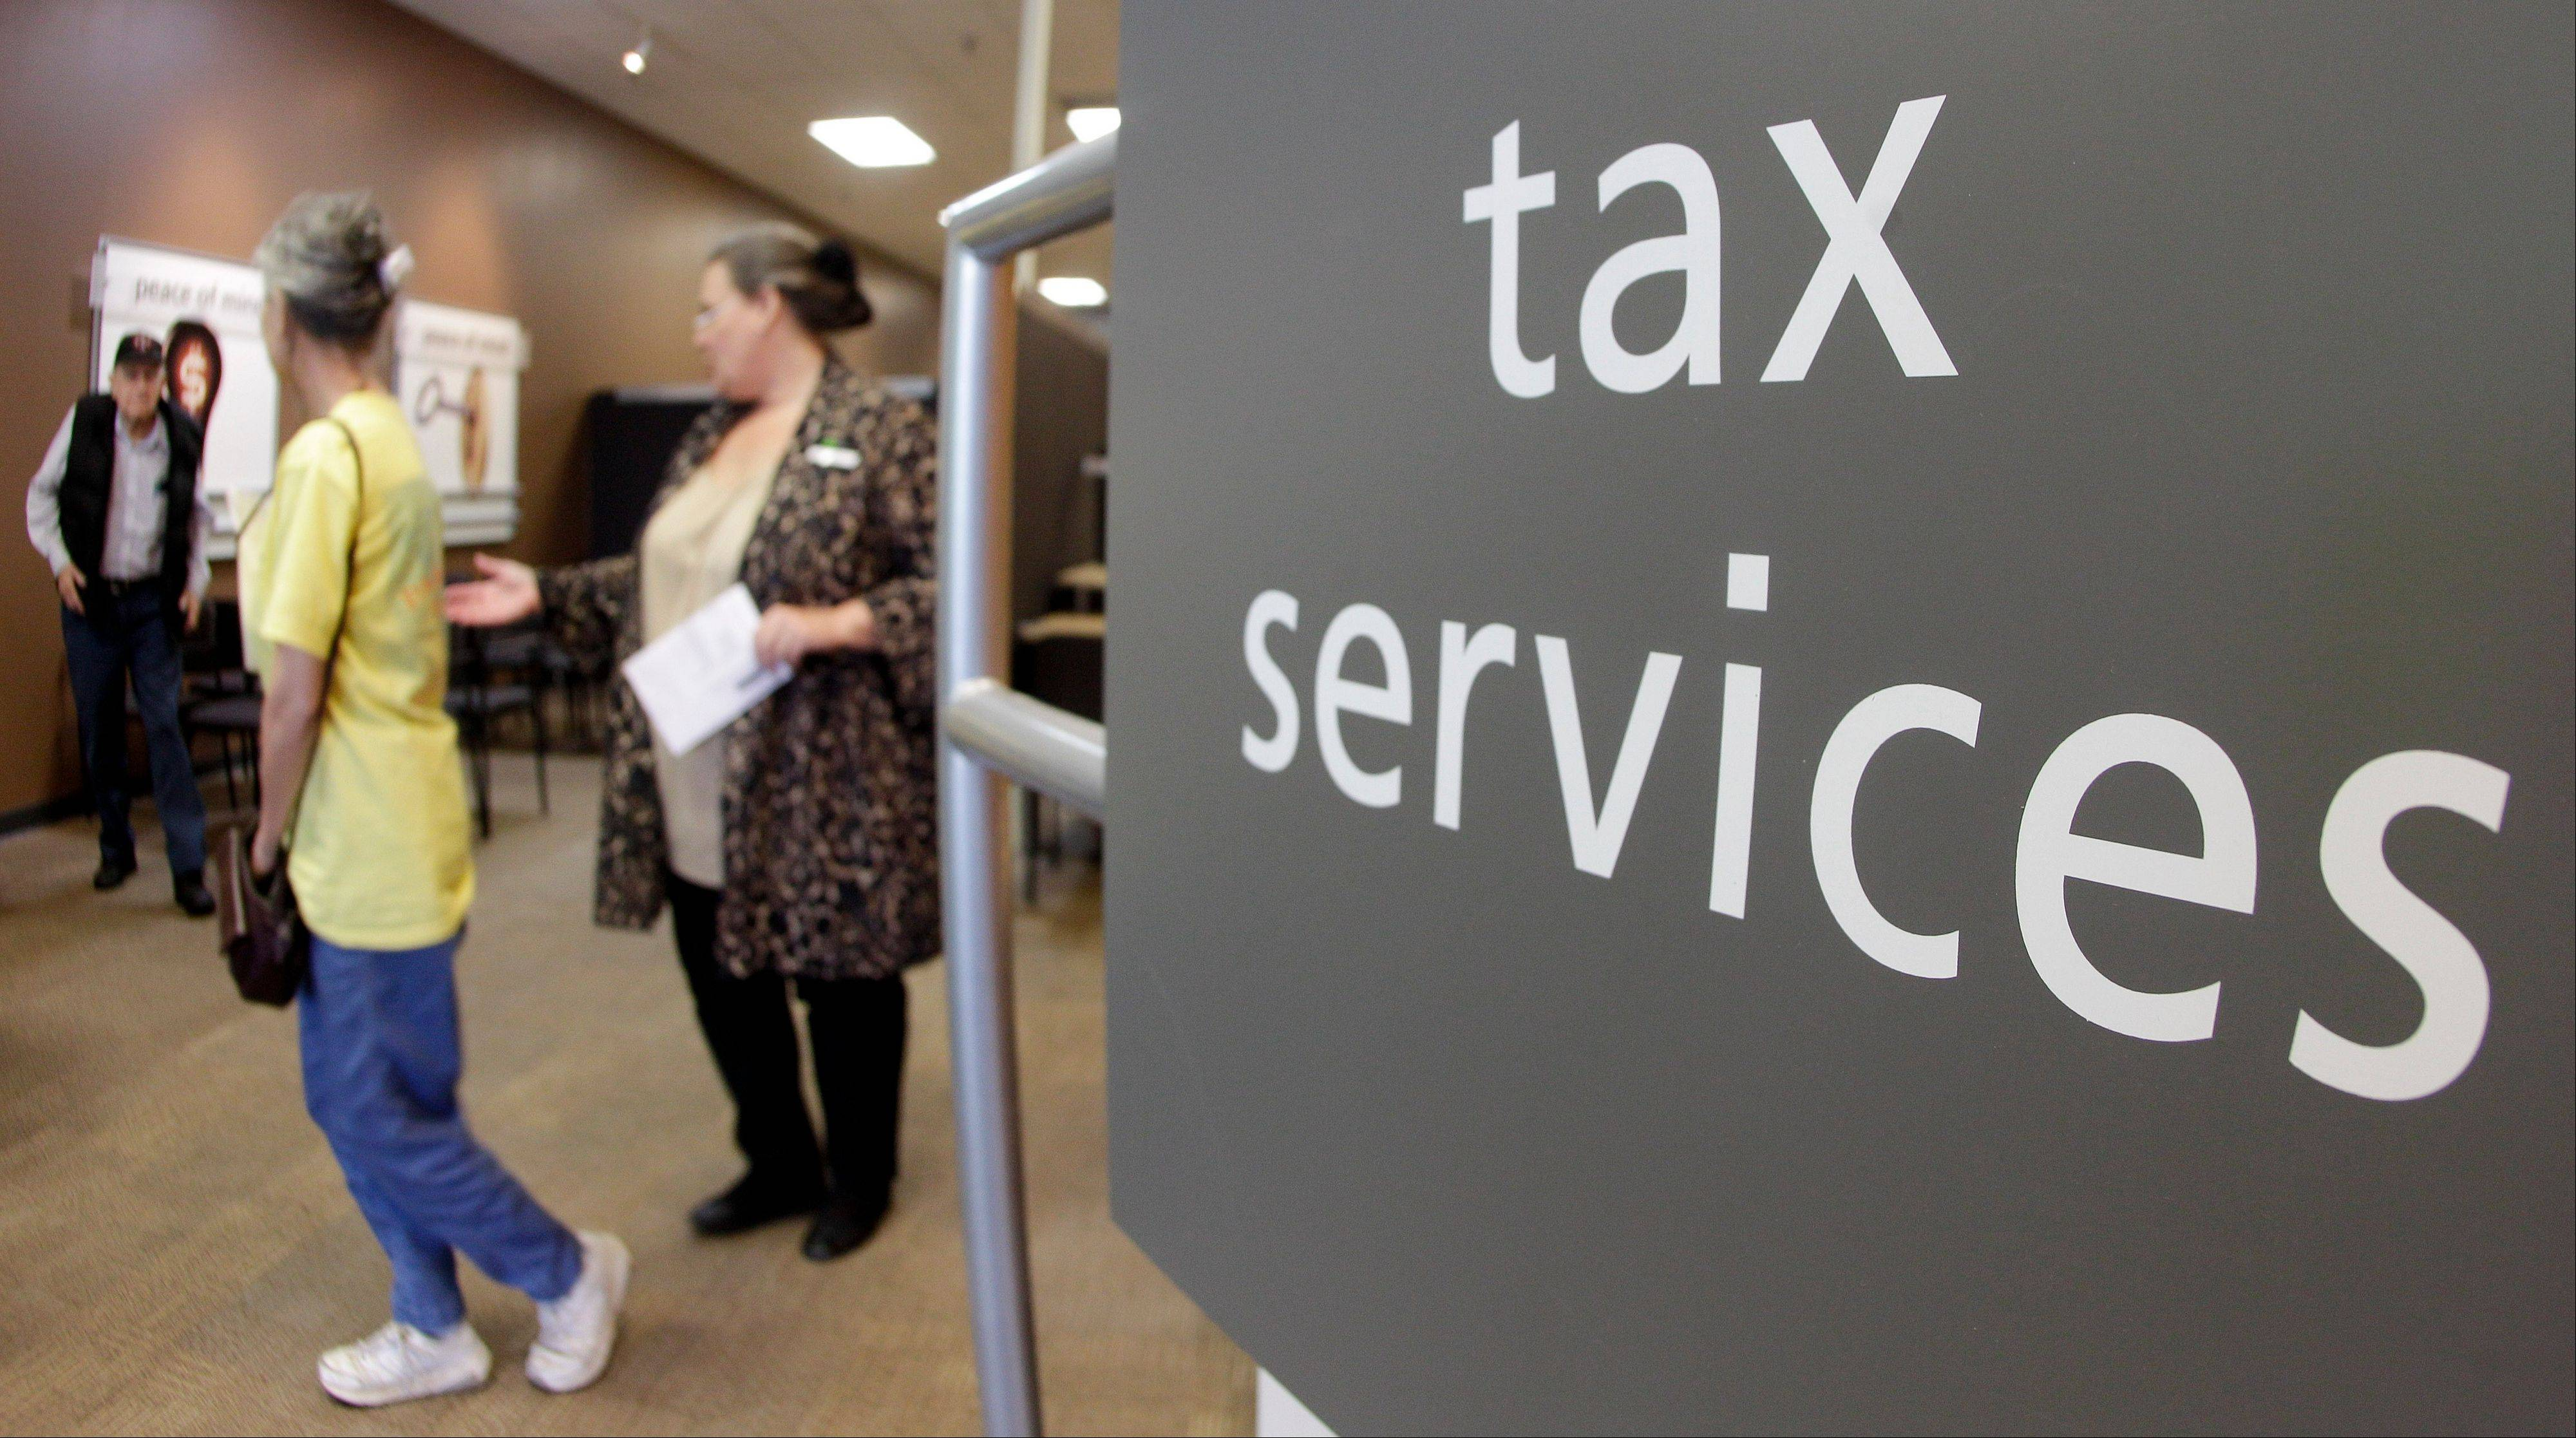 Suburban residents leave $300 million in tax credits unclaimed